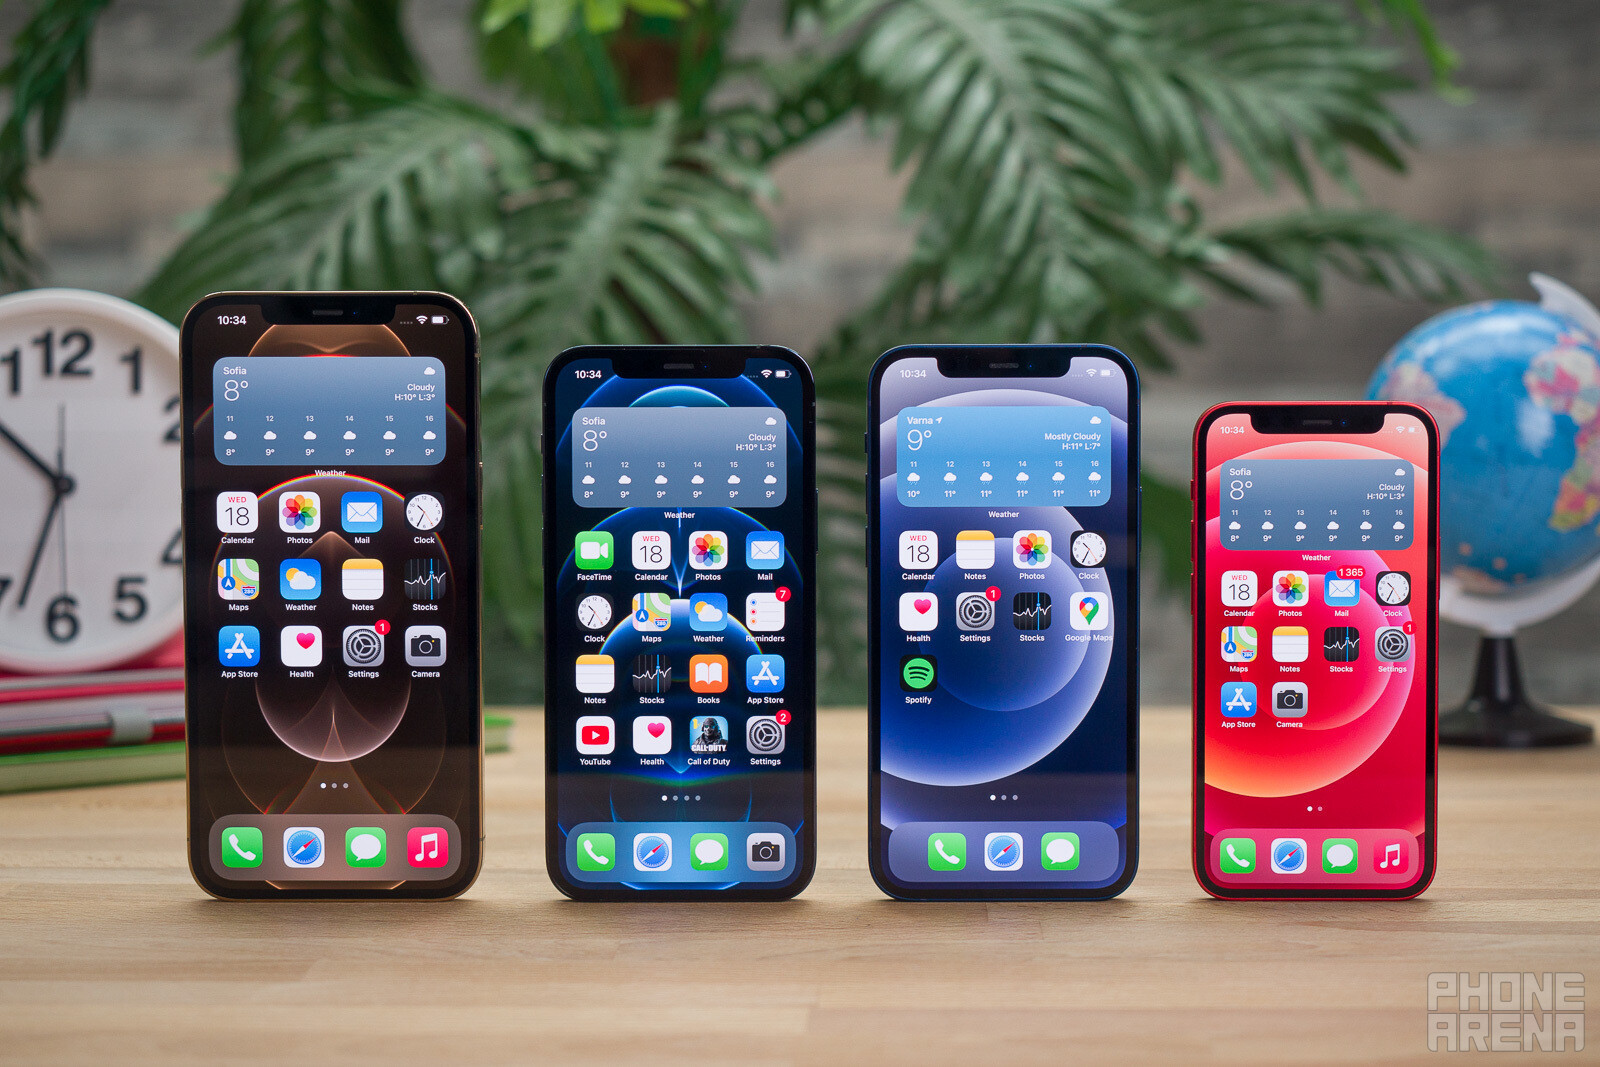 The iPhone 12 family - Why you should reconsider buying an iPhone 12